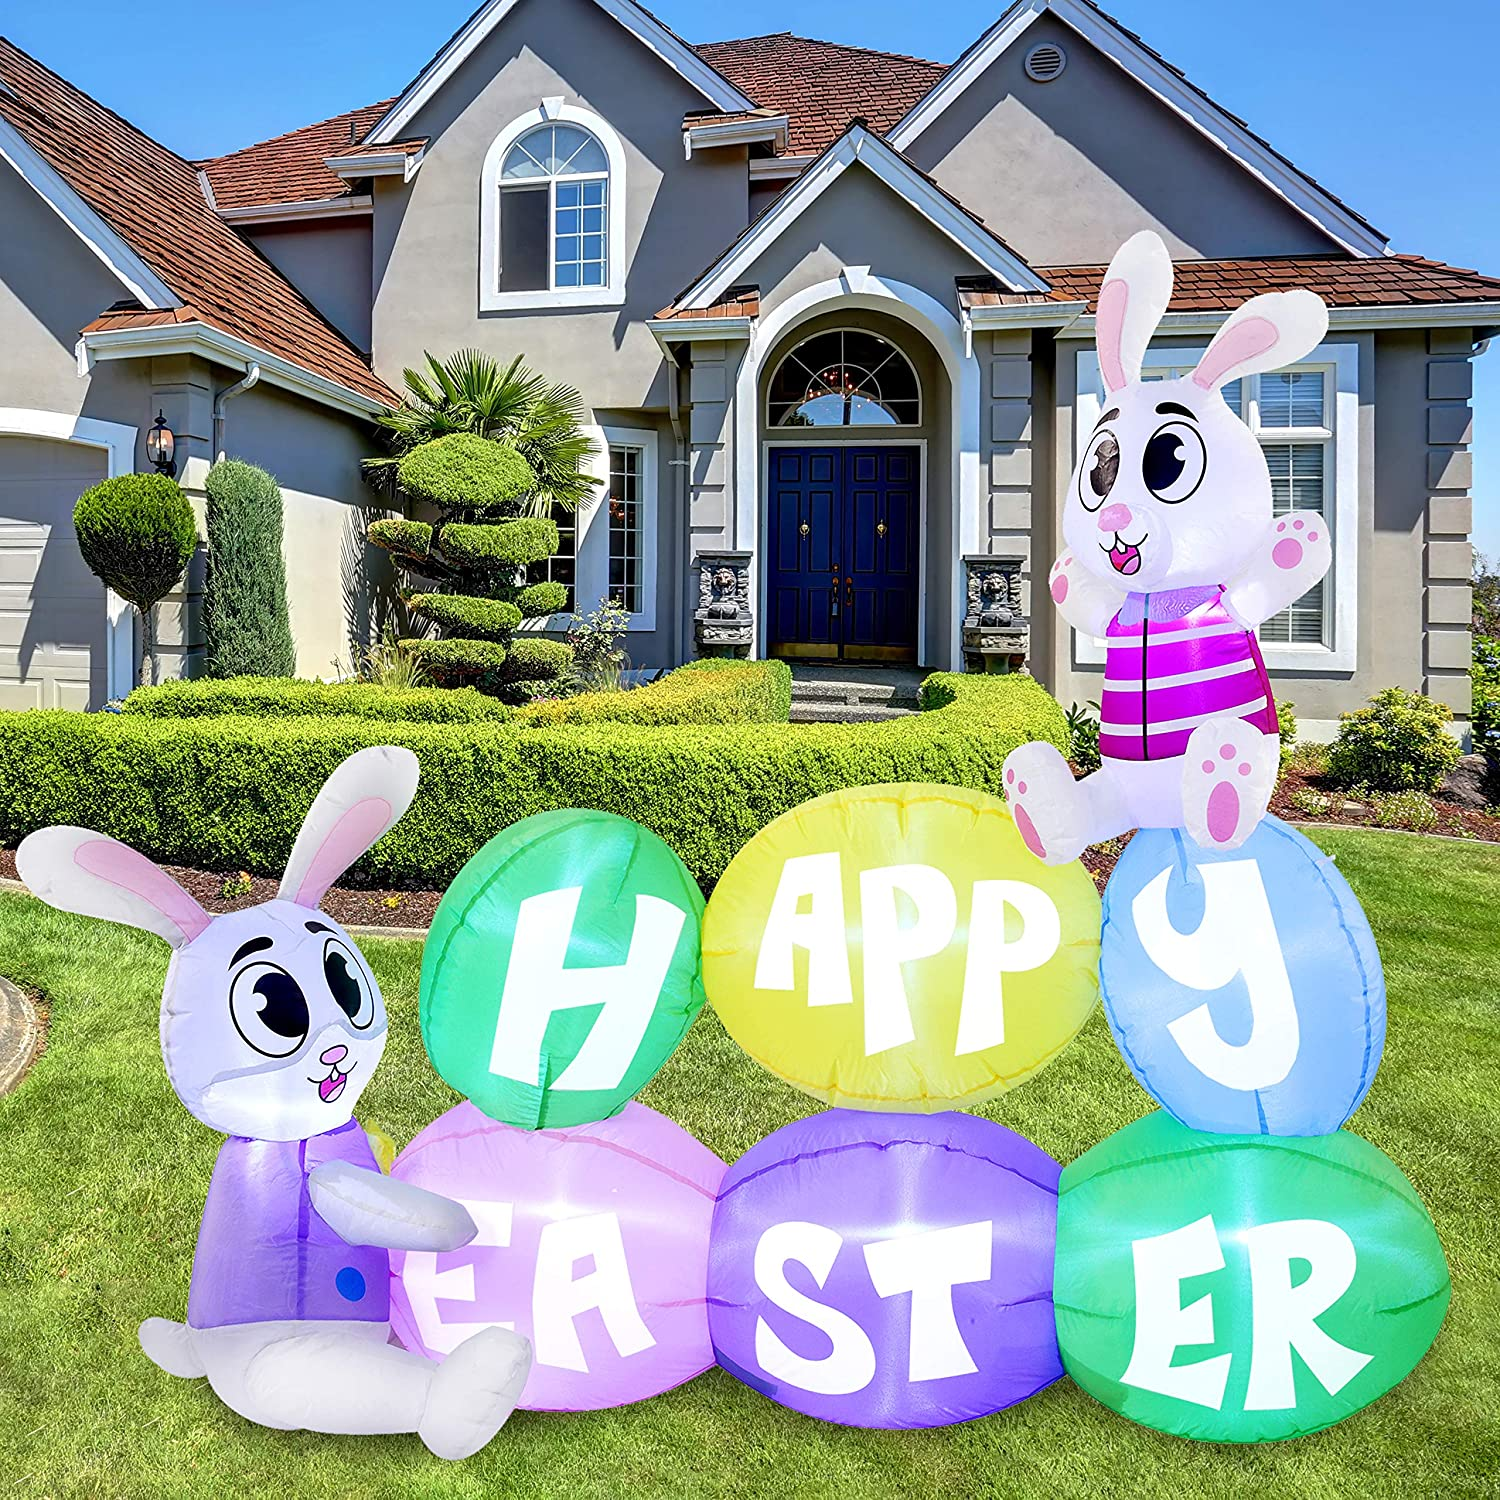 Joiedomi Easter Inflatable Max 61% OFF Outdoor Decorations Happy E ft 6 National products Long